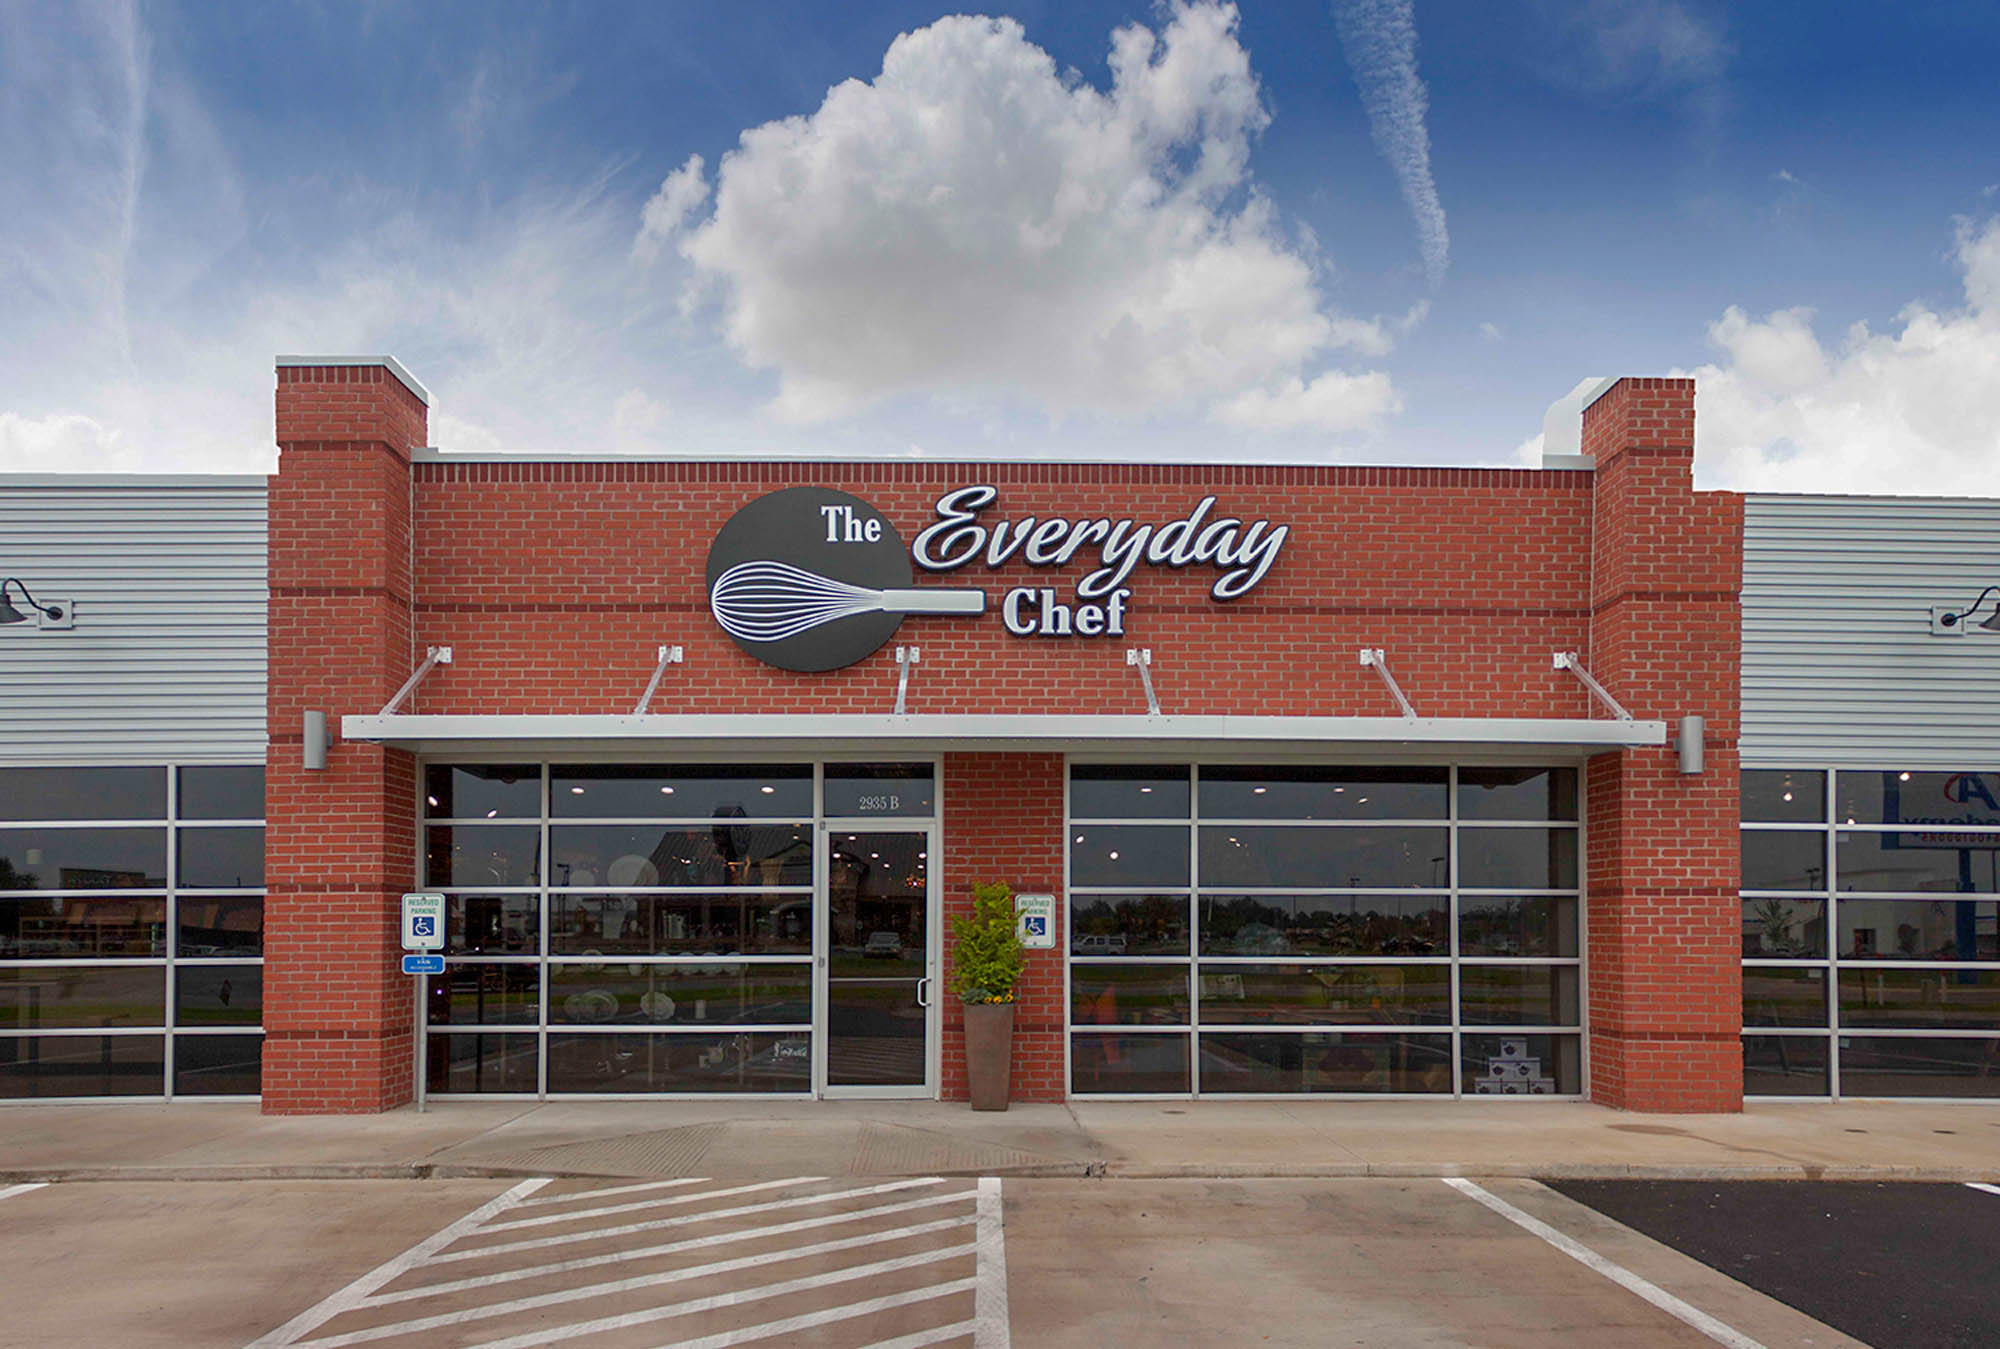 The_Everyday_Chef_Jonesboro_AR_07.jpg